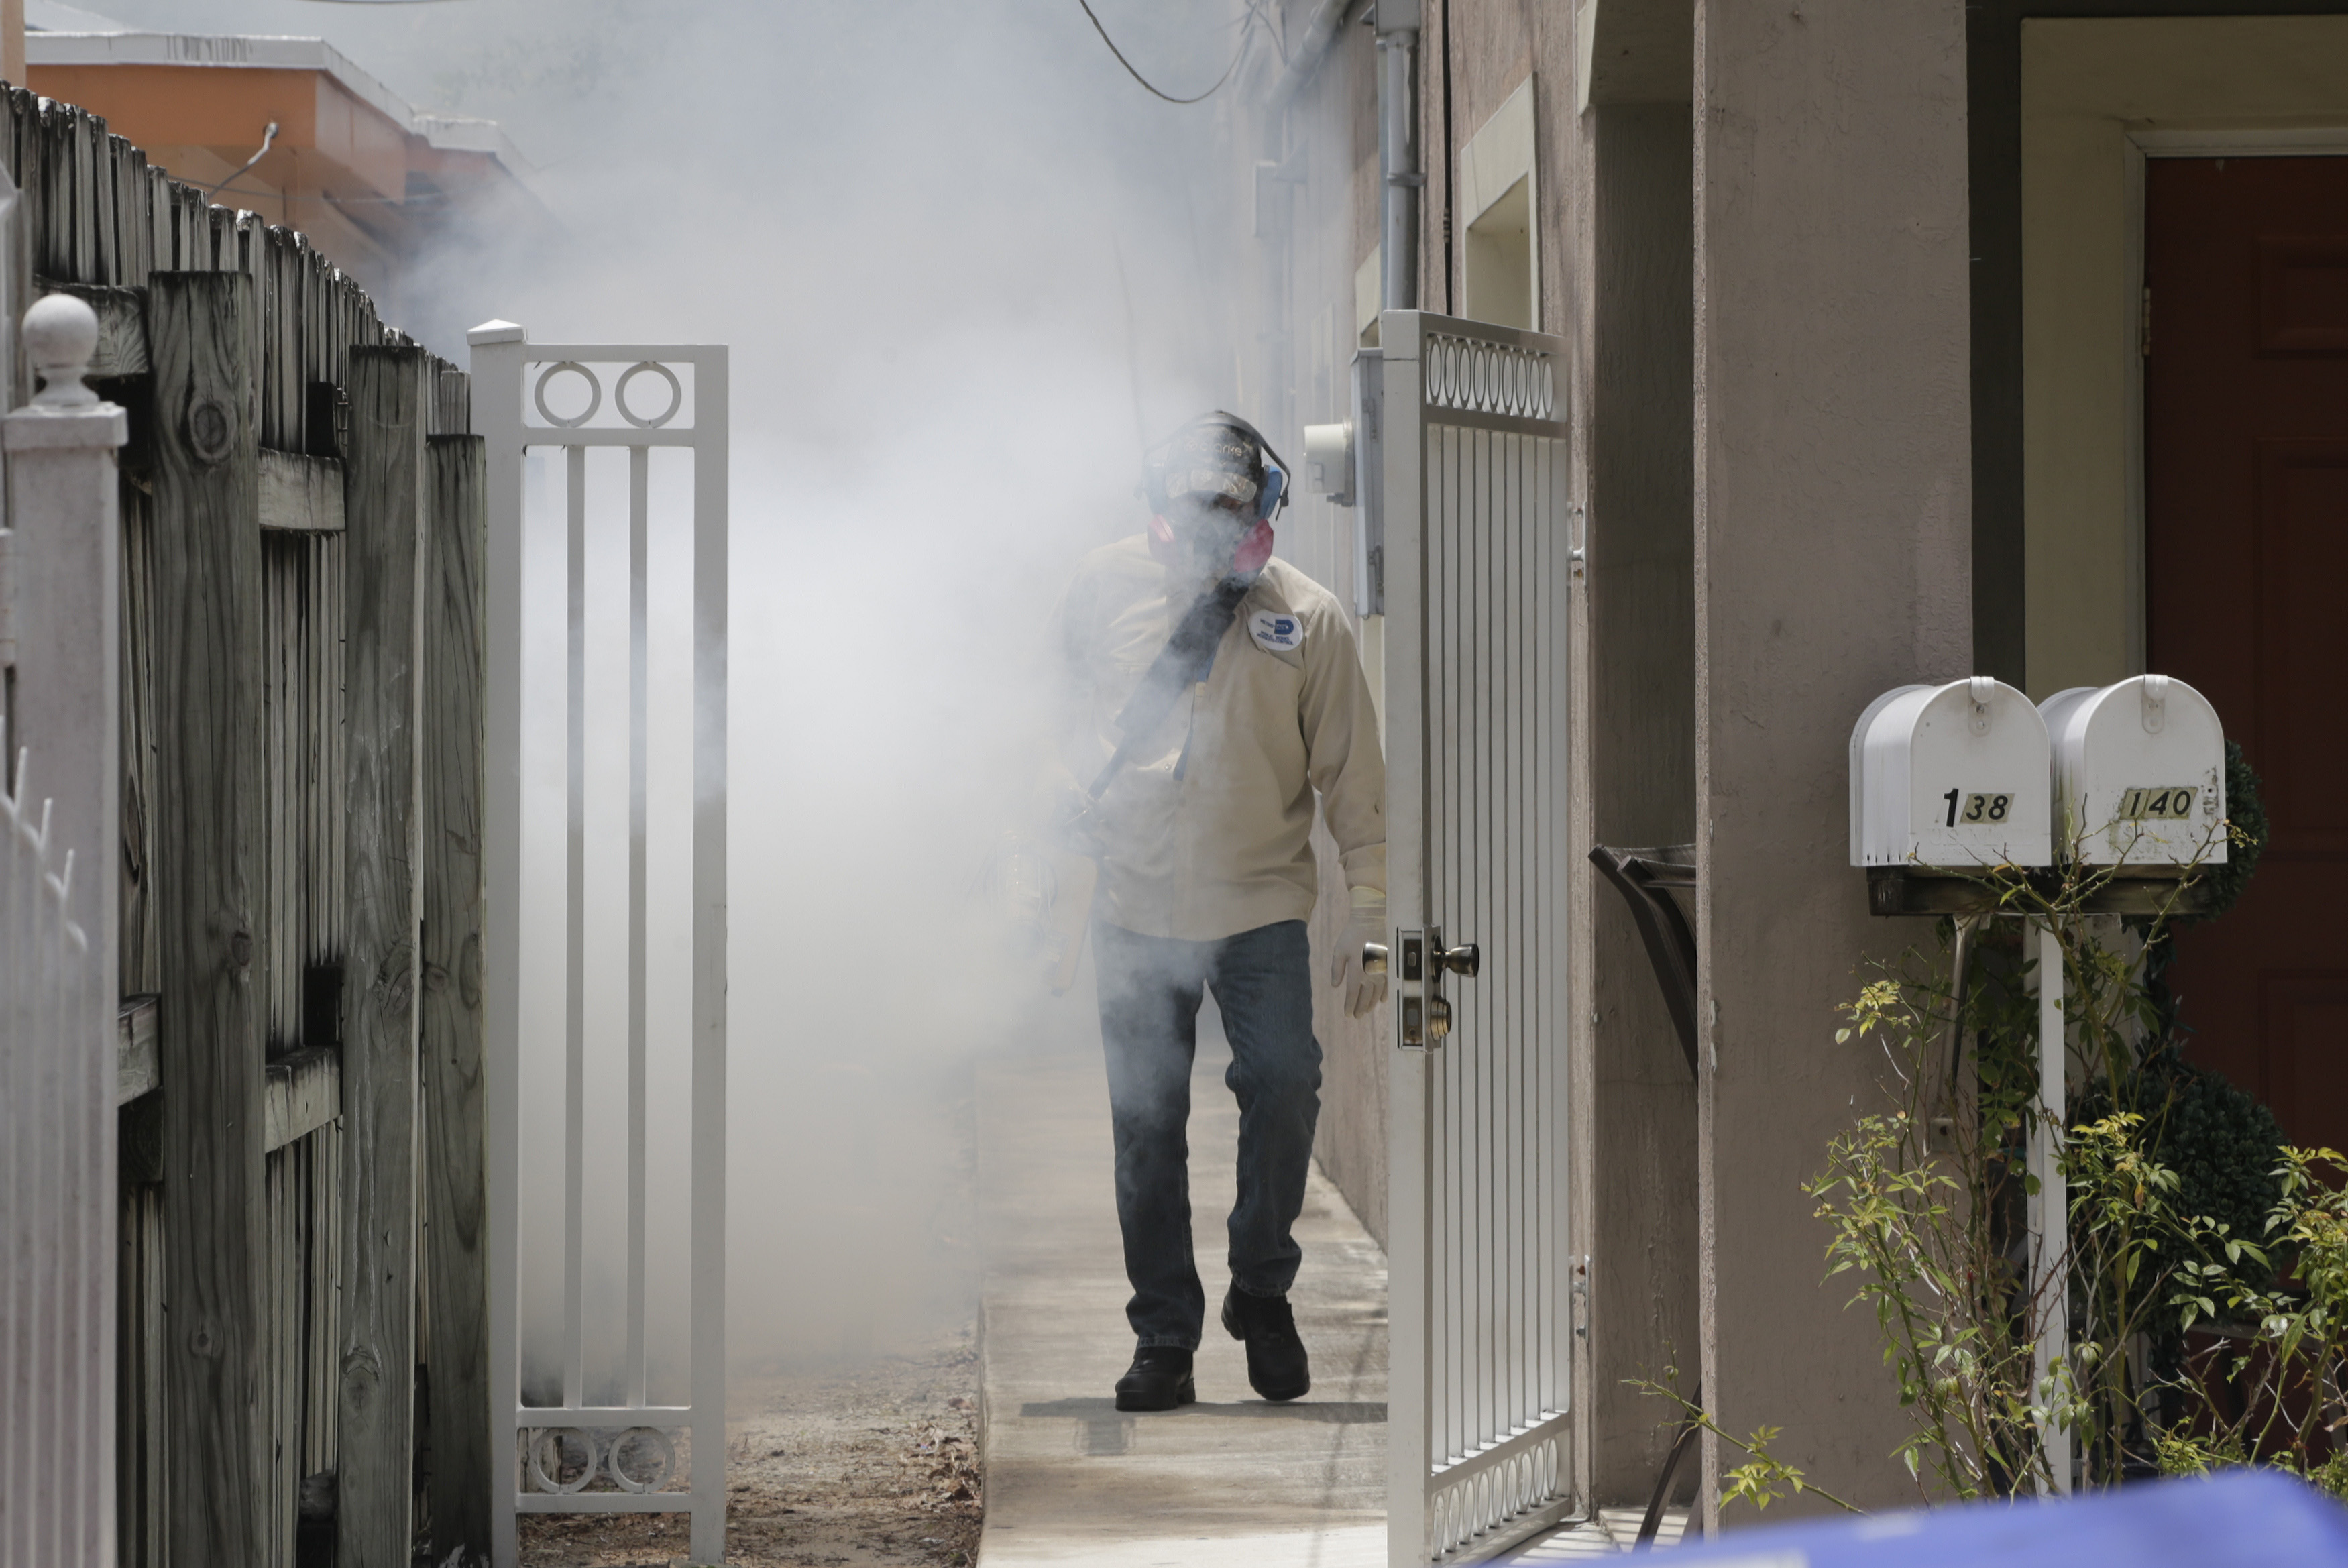 A Miami-Dade County mosquito control worker sprays around a home in the Wynwood area of Miami, Aug. 1, 2016.